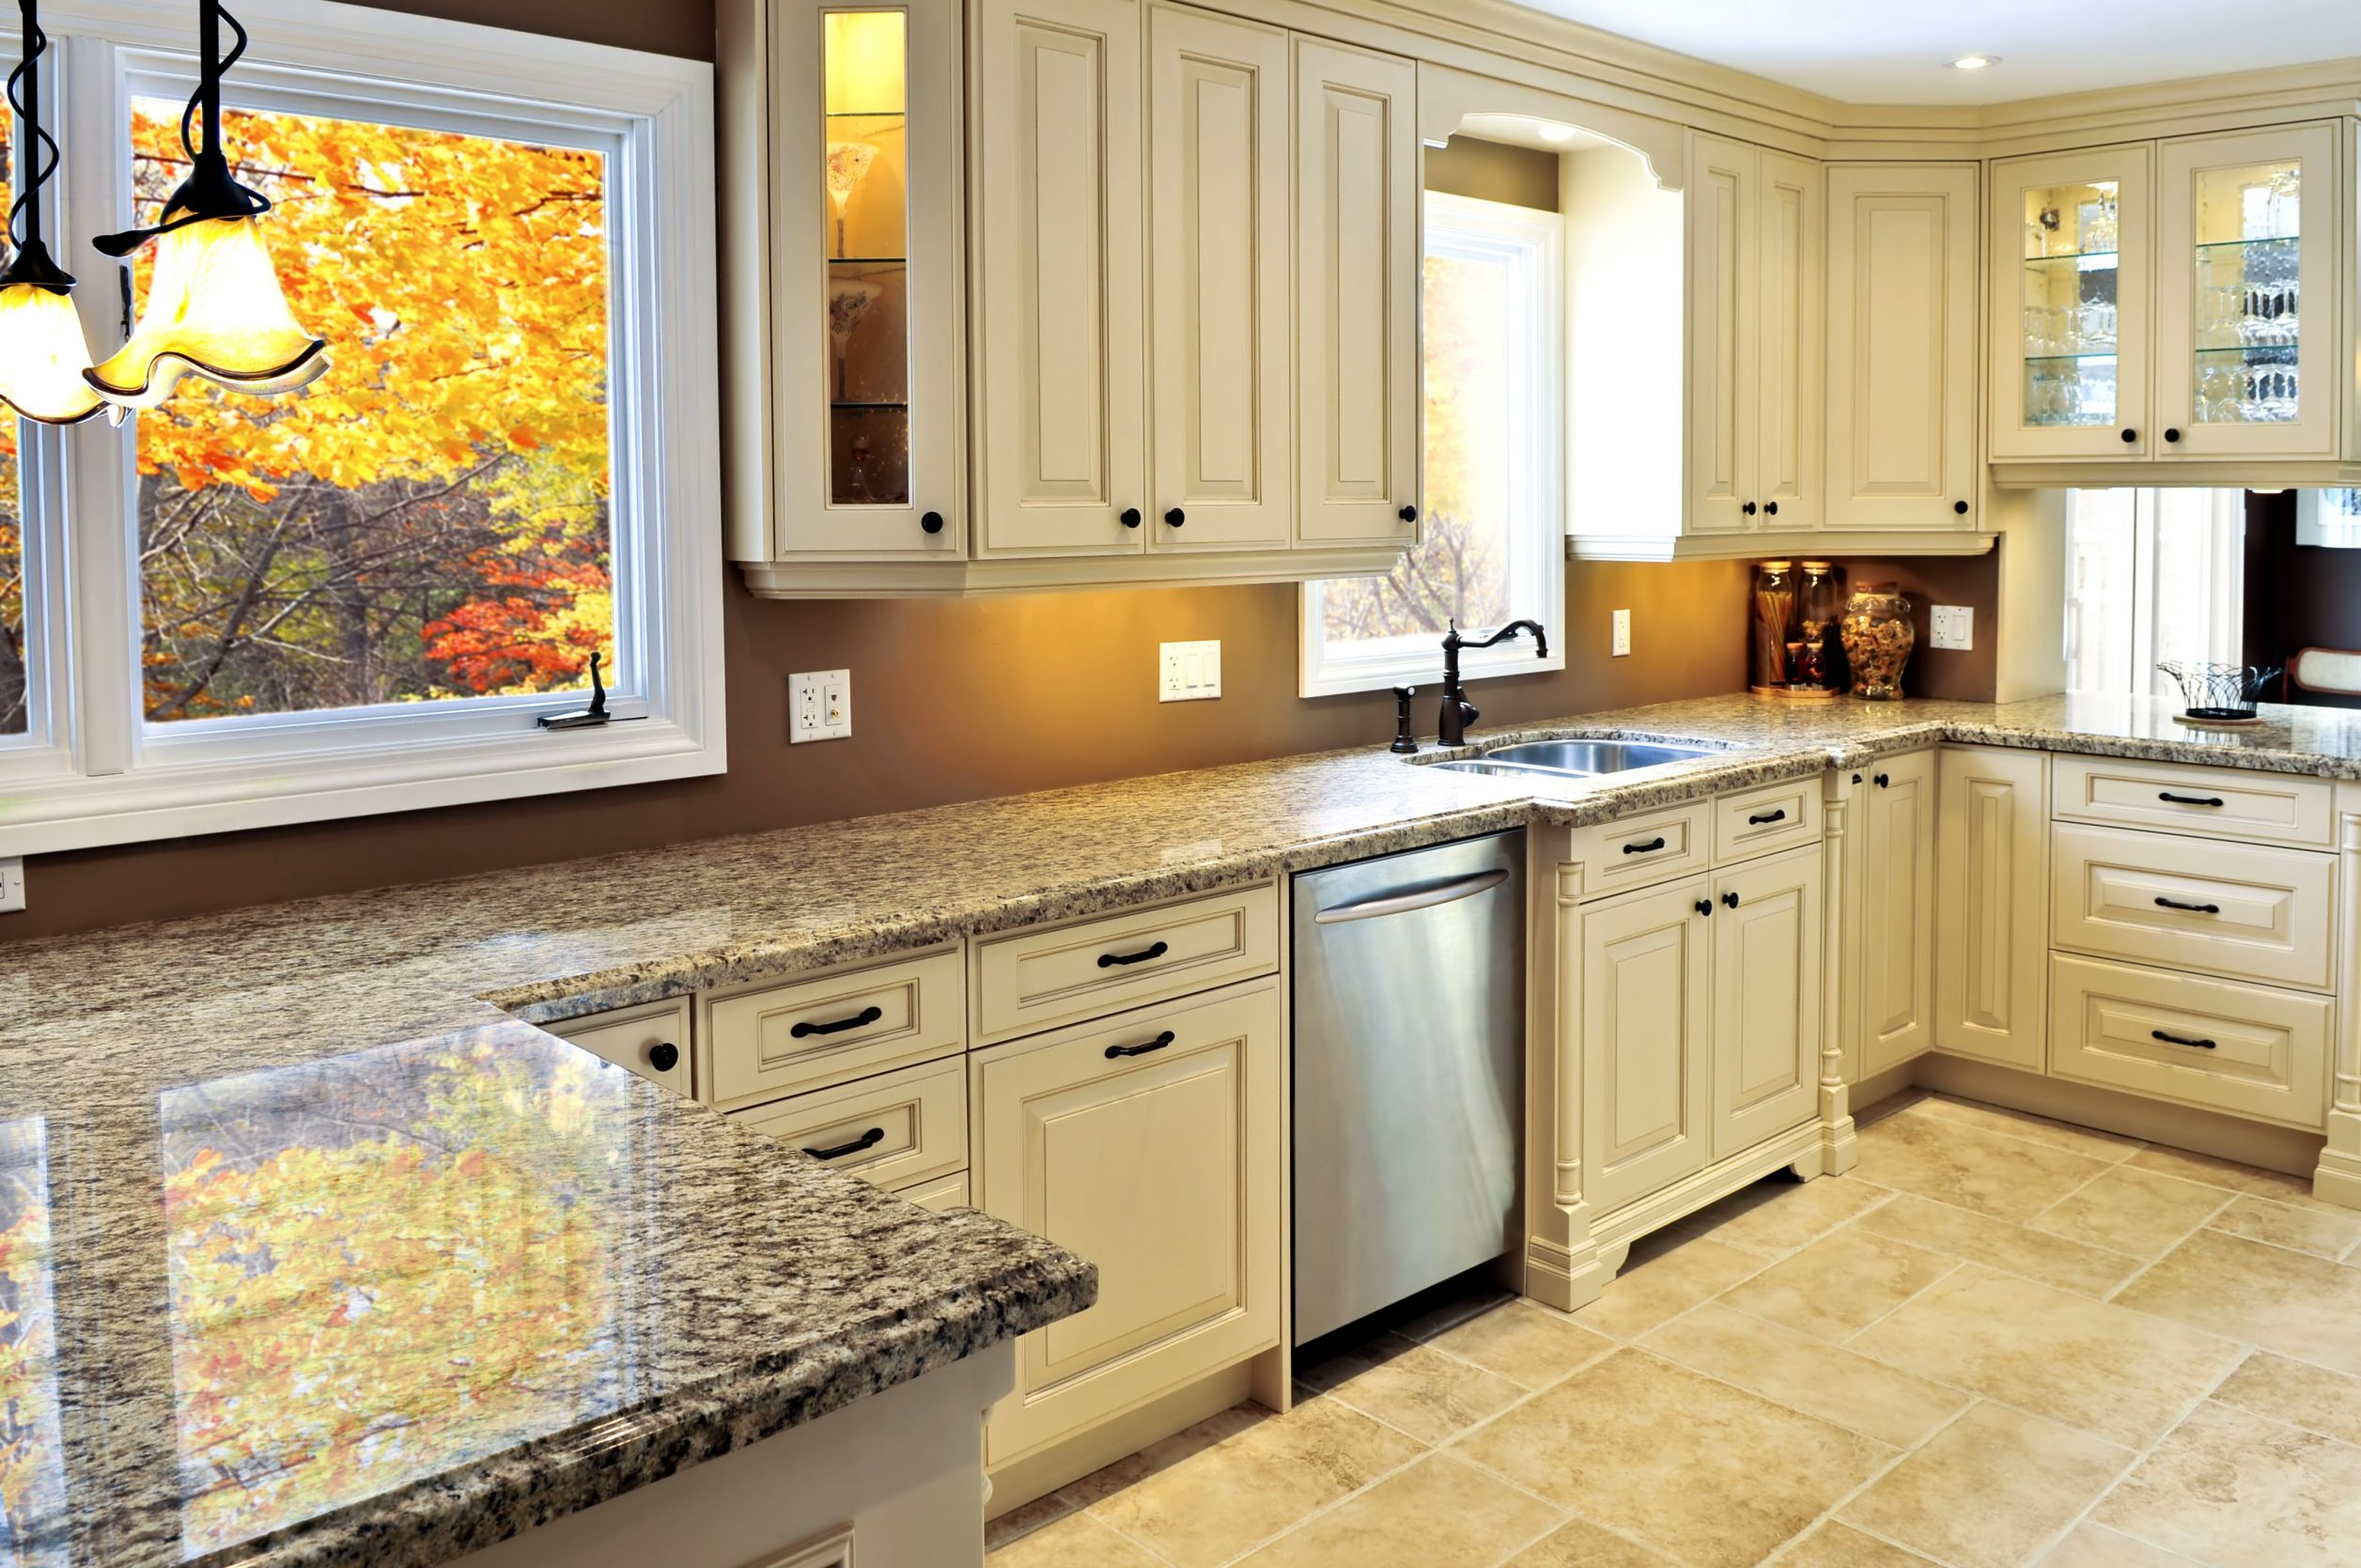 Quartz Countertops | Palazzo Kitchens and Baths - Remodel Contractor